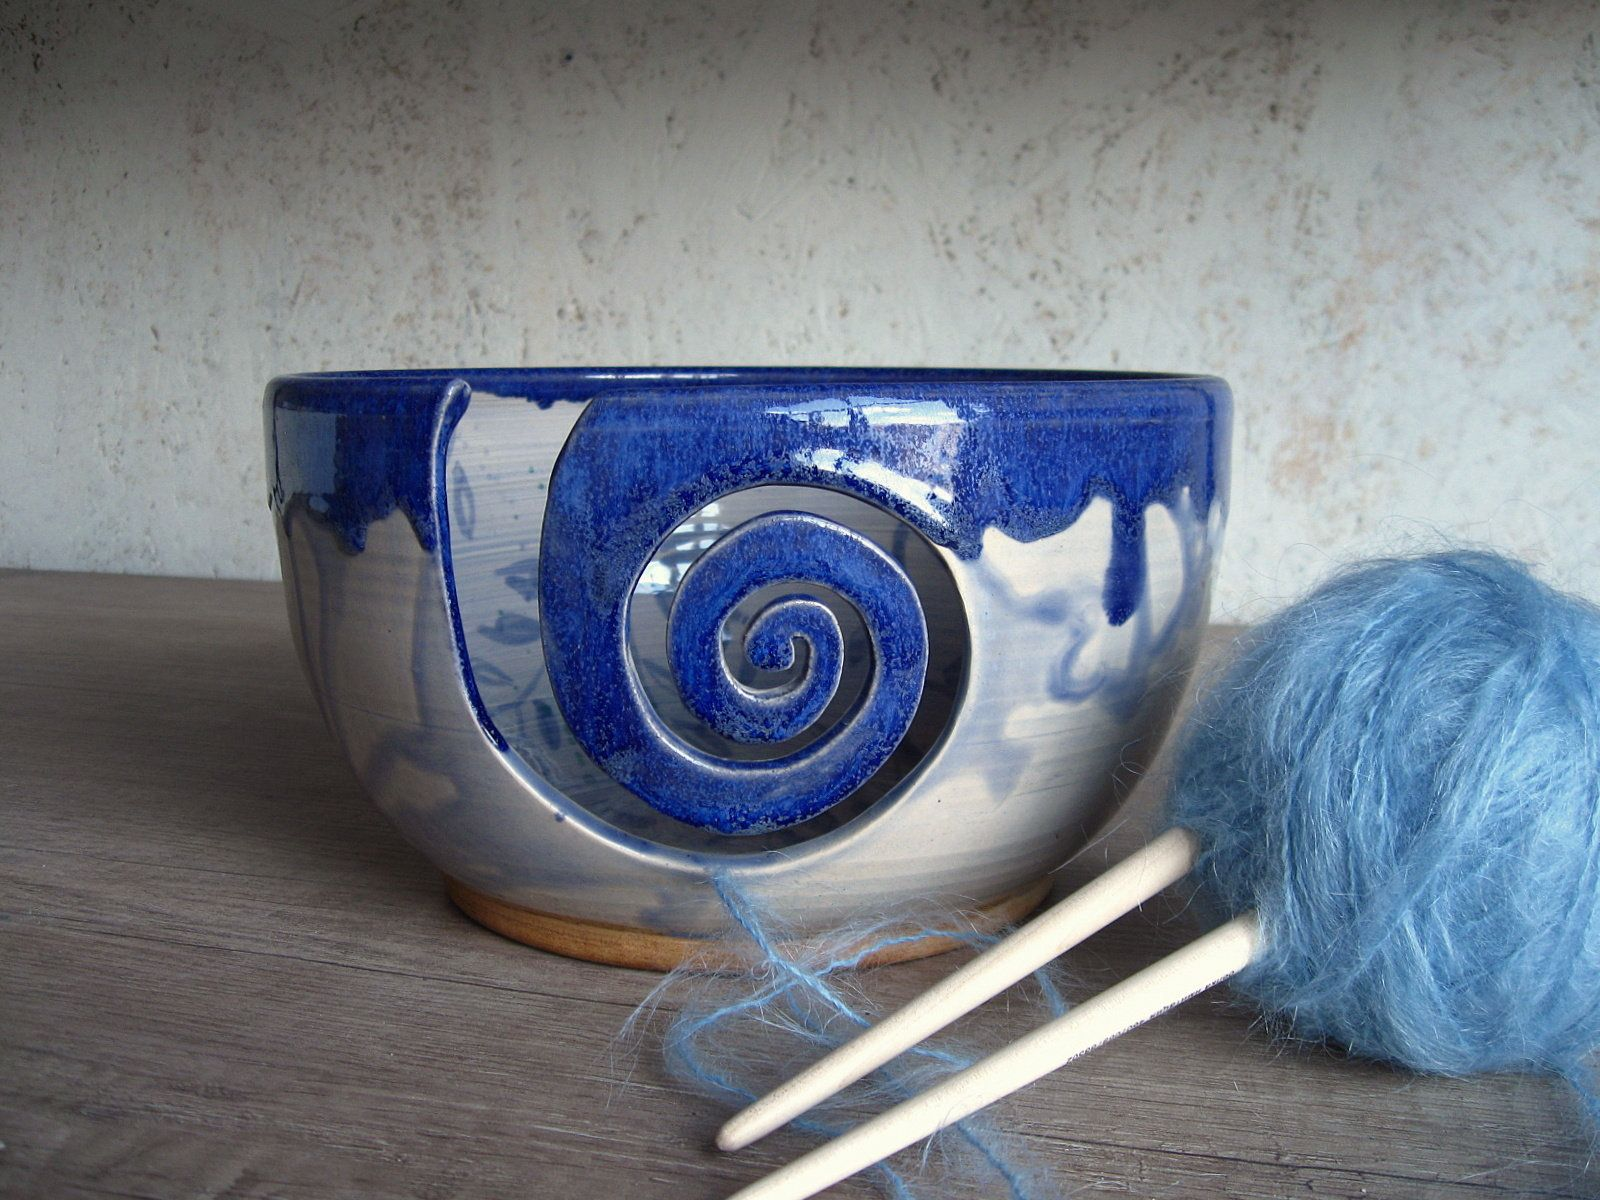 Ceramic Yarn Bowl, Blue Violet Knitting Bowl, Crochet Bowl, Craft Organizer, Yarn Storage, Yarn Dispenser, Handmade Ceramic Knitting Bowl #crochetbowl